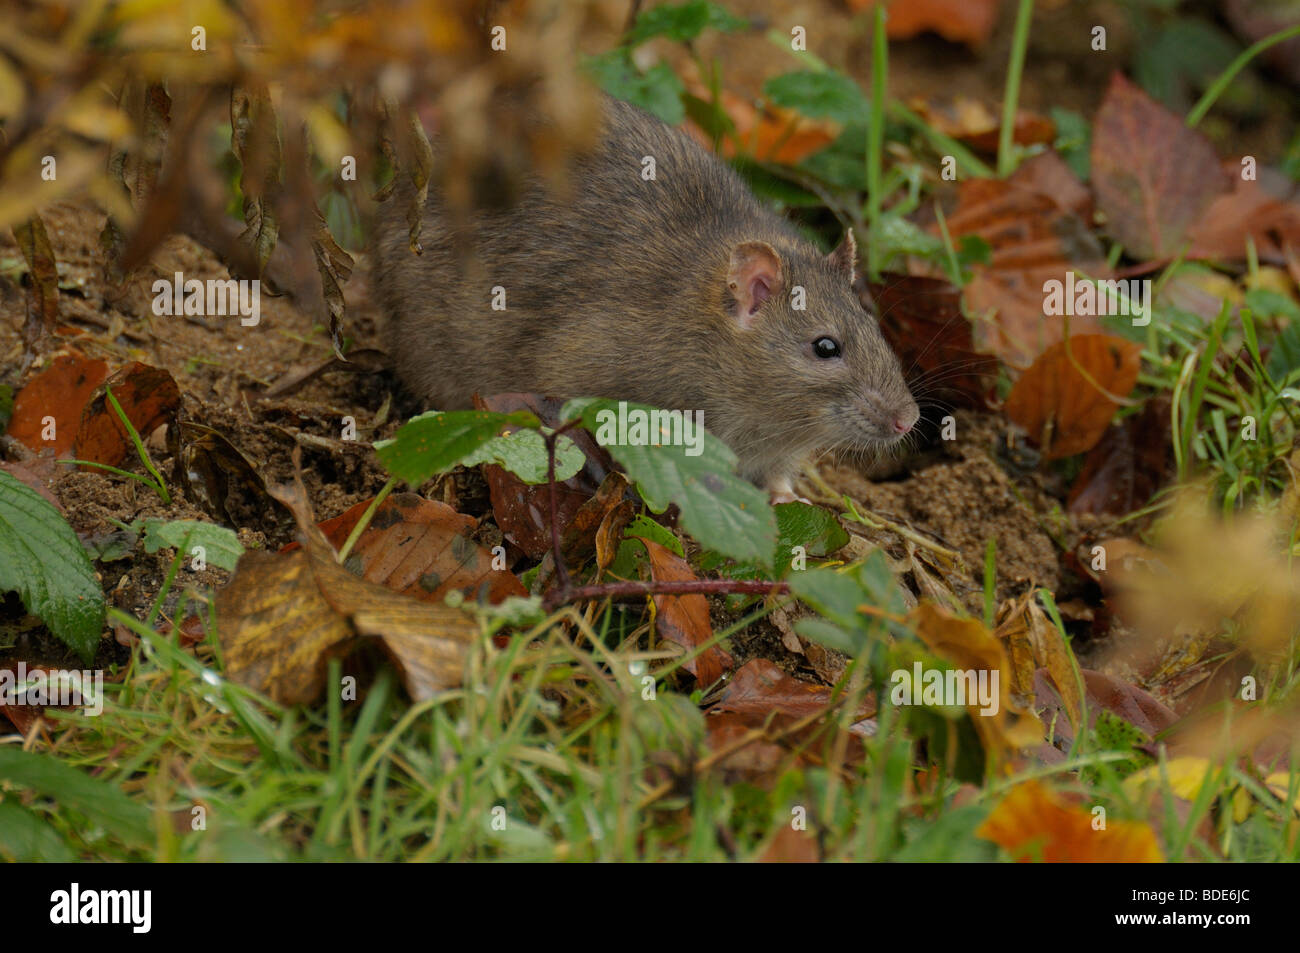 Brown Rat in undergrowth Stock Photo